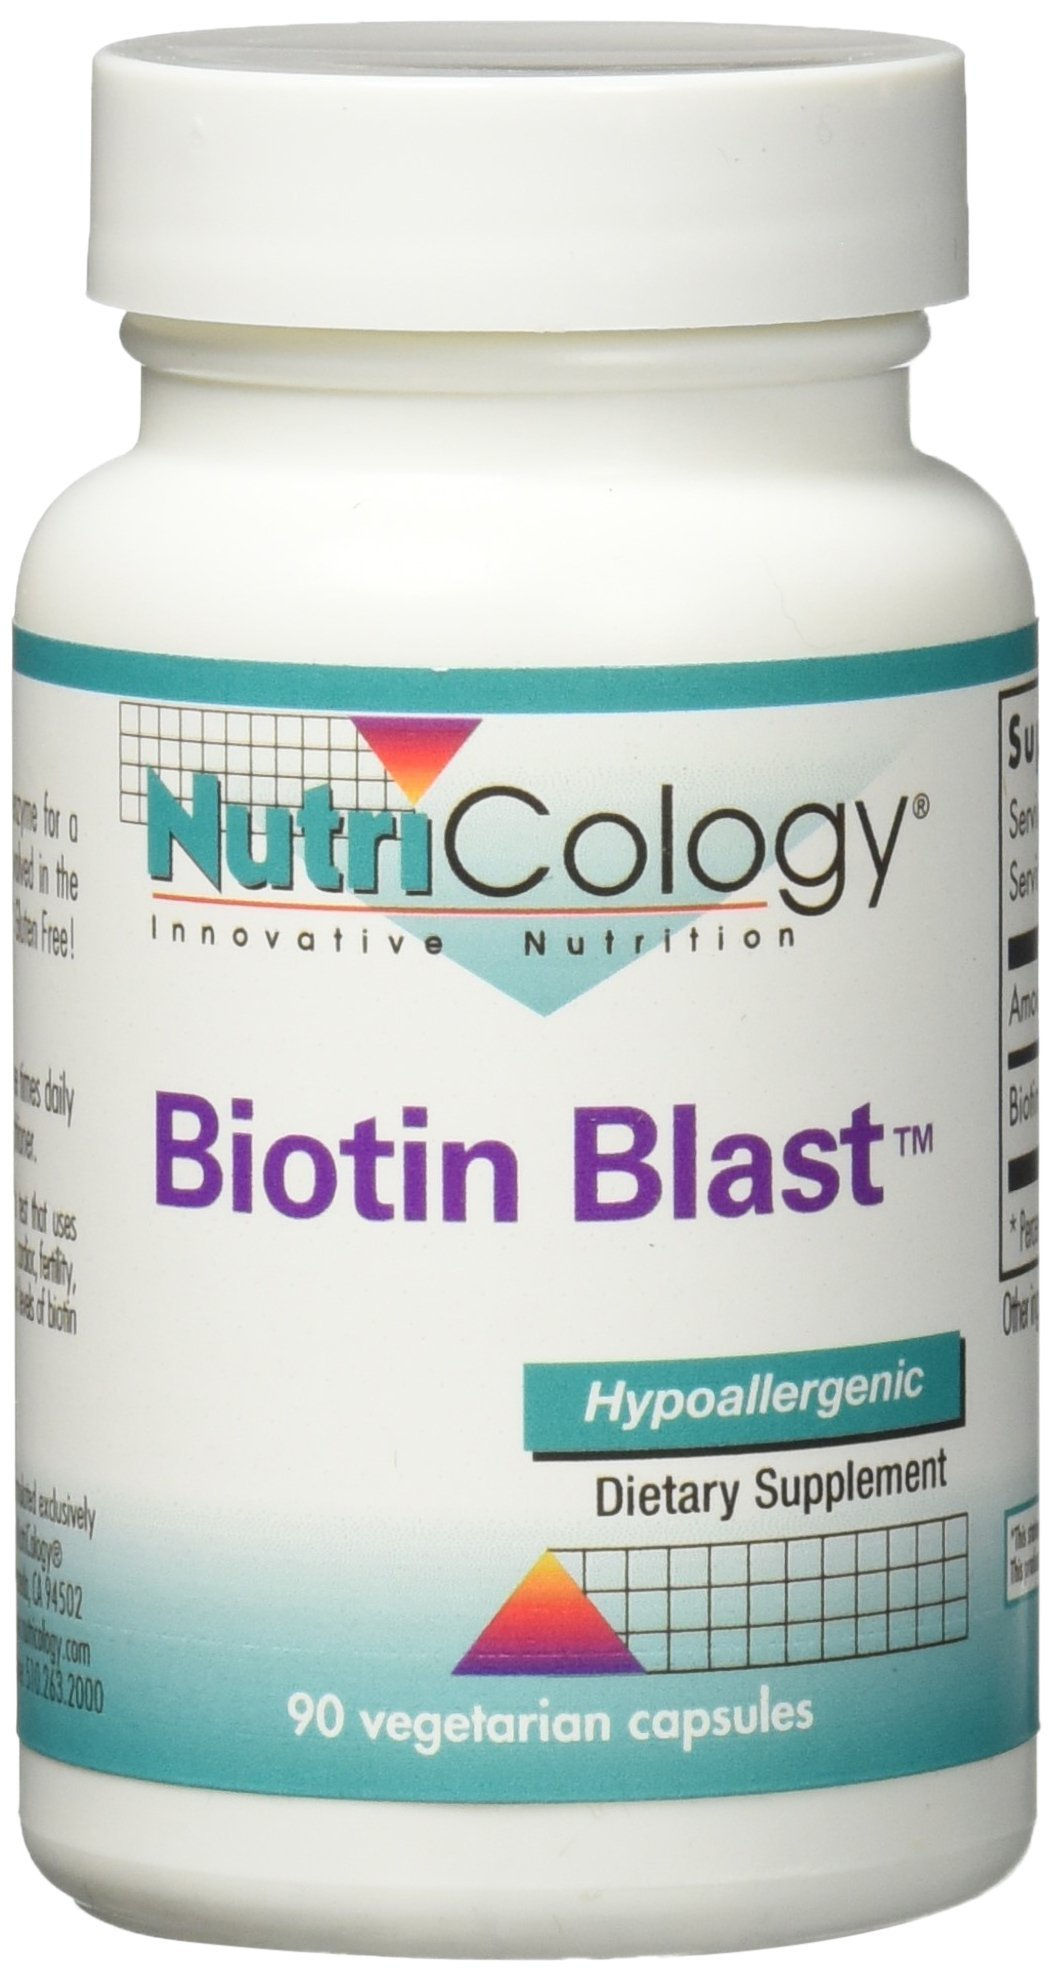 Nutricology Biotin Blast Capsules, 90 Count by Nutricology